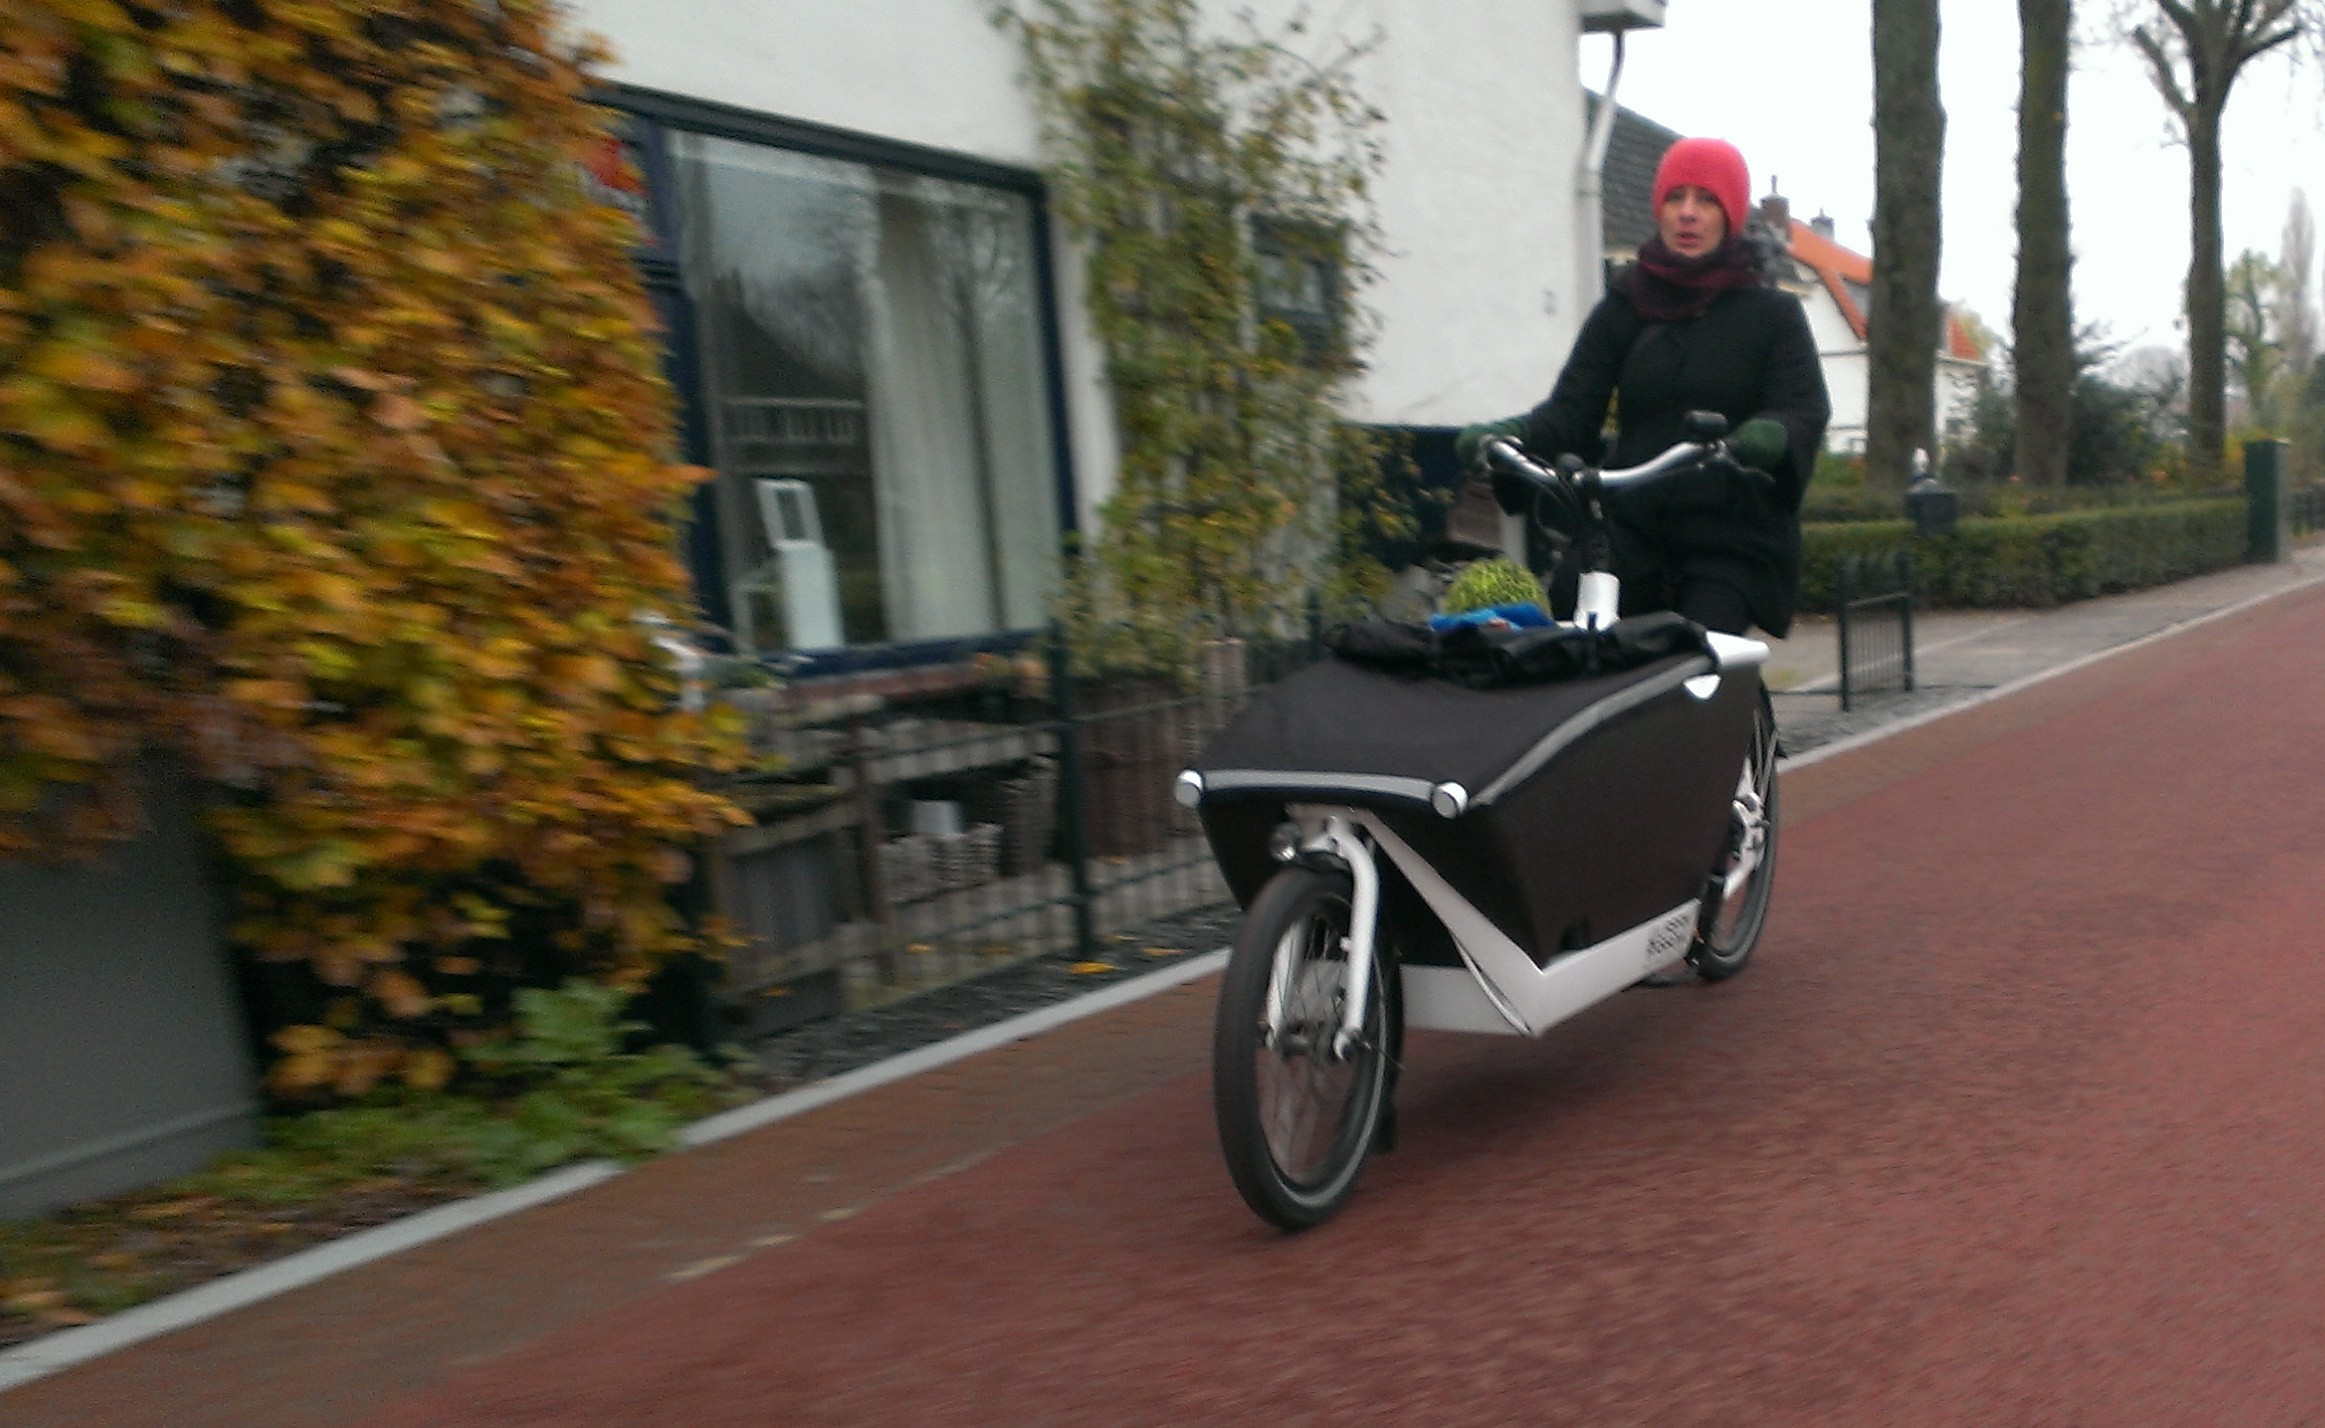 on vacation with the bikes: the urban arrow in the netherlands